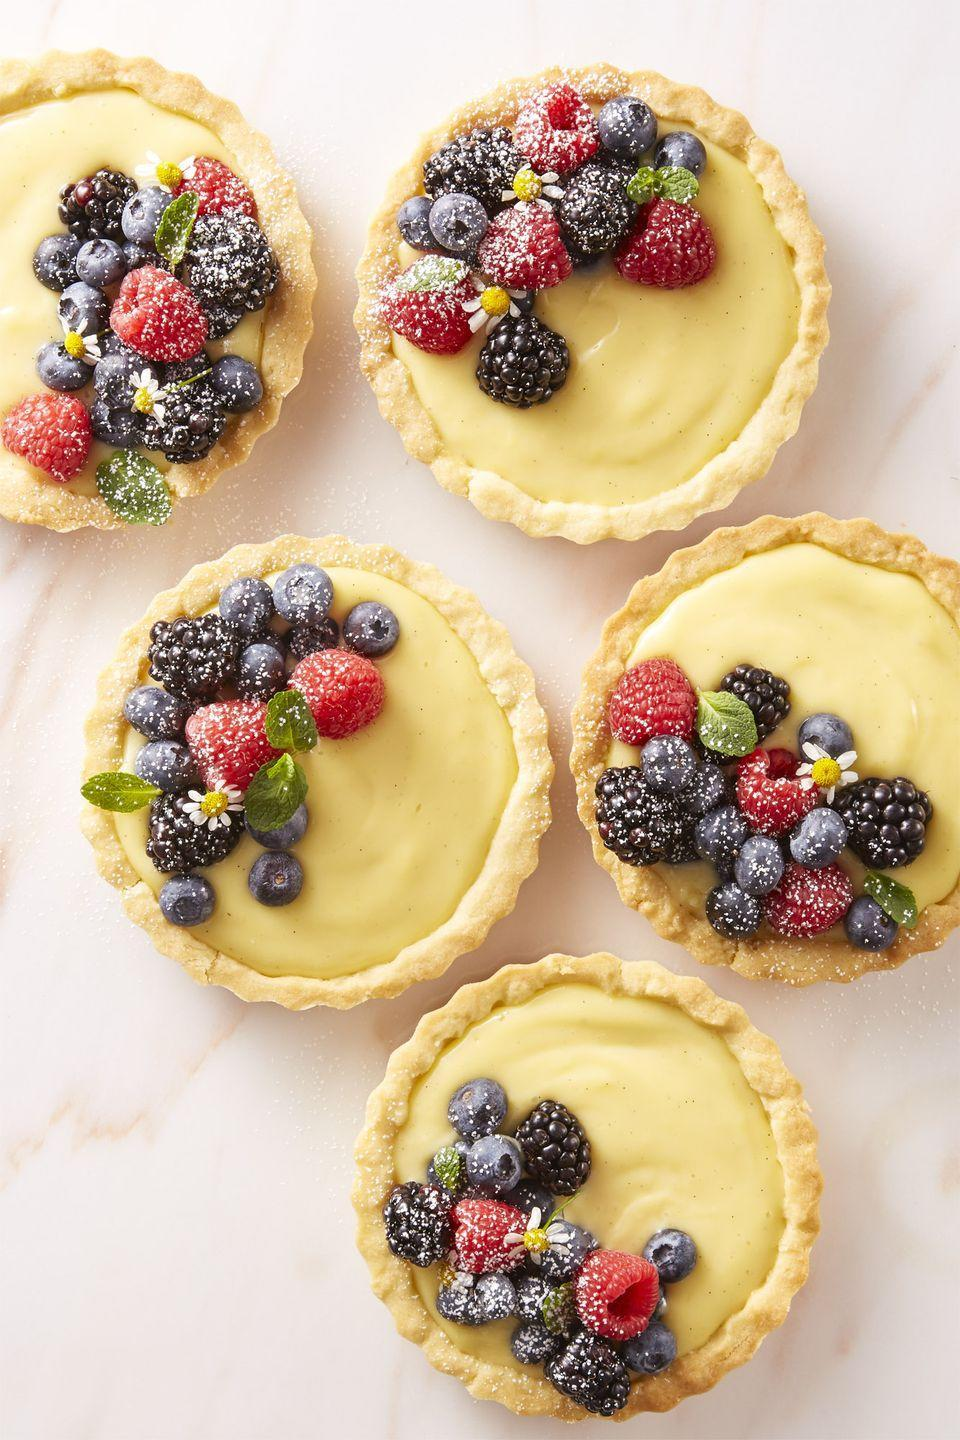 "<p>These mini tarts are more like red, yellow, and blue — but they'll still be a 4th of July crowdpleaser. Trust. </p><p><a class=""link rapid-noclick-resp"" href=""https://www.amazon.com/Webake-Inch-Quiche-Removable-Bottom/dp/B01M9A33NL/ref=sr_1_4?tag=syn-yahoo-20&ascsubtag=%5Bartid%7C10055.g.1748%5Bsrc%7Cyahoo-us"" rel=""nofollow noopener"" target=""_blank"" data-ylk=""slk:SHOP MINI TART PANS"">SHOP MINI TART PANS</a></p><p><em><a href=""https://www.goodhousekeeping.com/food-recipes/dessert/a43667/very-berry-cream-tartlets-recipe/"" rel=""nofollow noopener"" target=""_blank"" data-ylk=""slk:Get the recipe for Very Berry Cream Tartlets »"" class=""link rapid-noclick-resp"">Get the recipe for Very Berry Cream Tartlets »</a></em></p>"